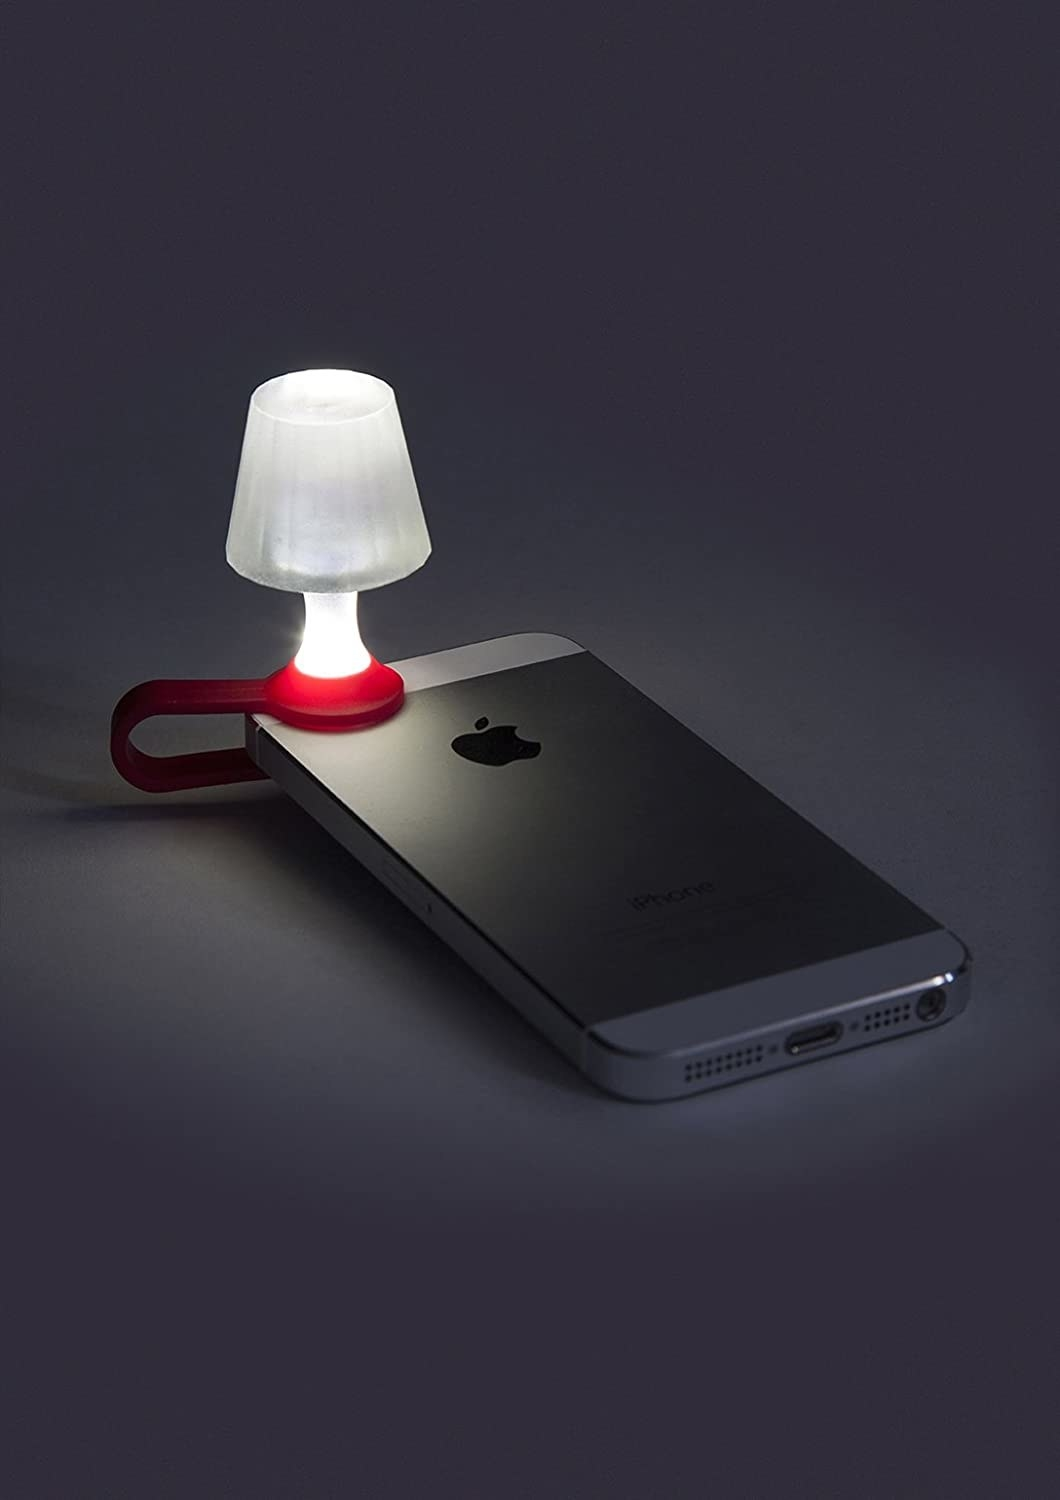 white lamp on the flashlight of a phone